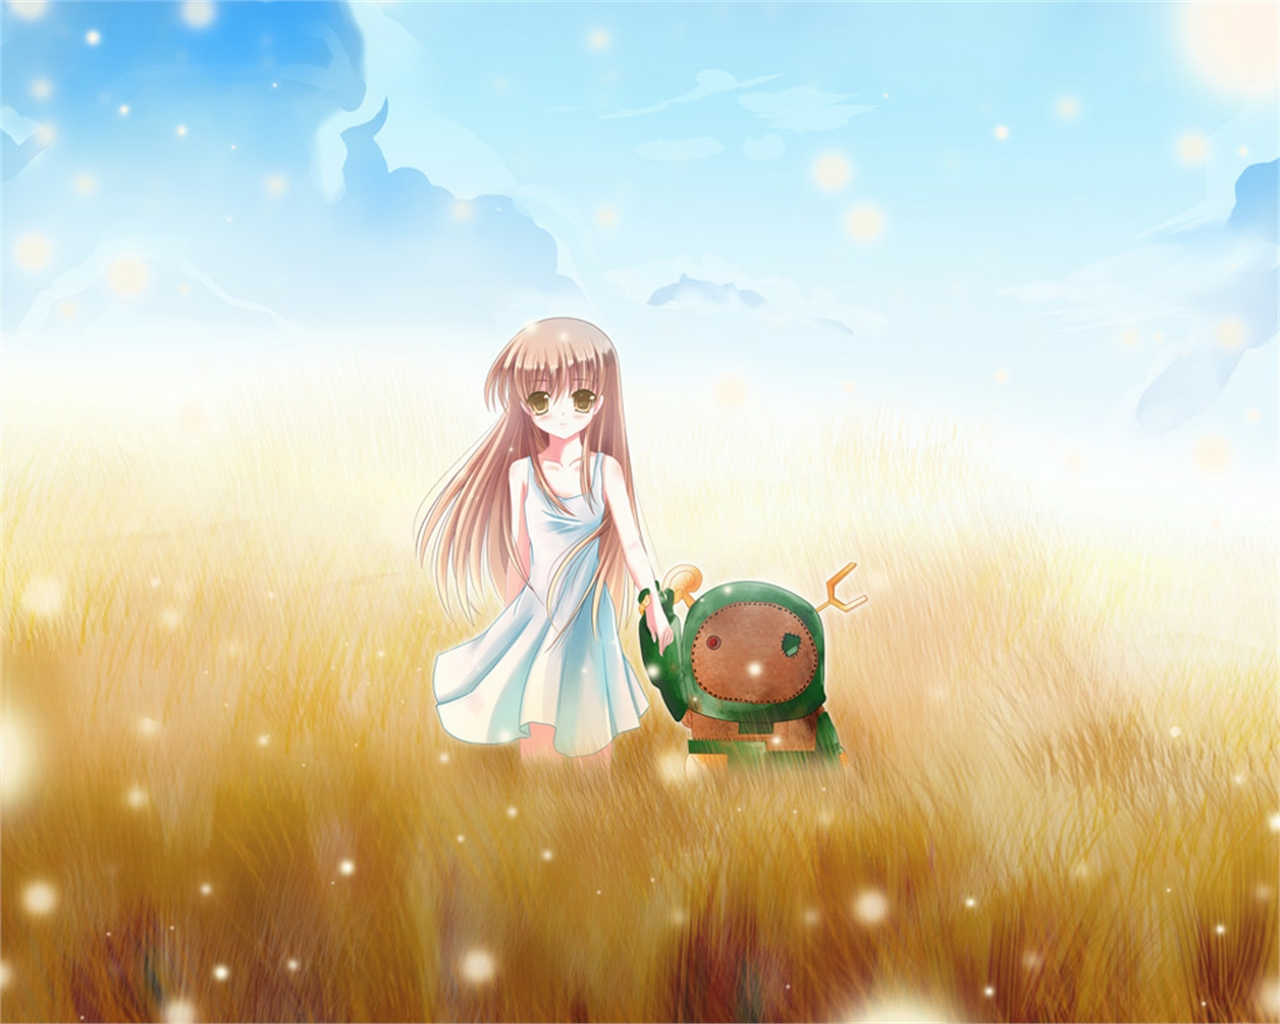 Download Wallpaper From Anime Clannad With Tags Full Screen Girl